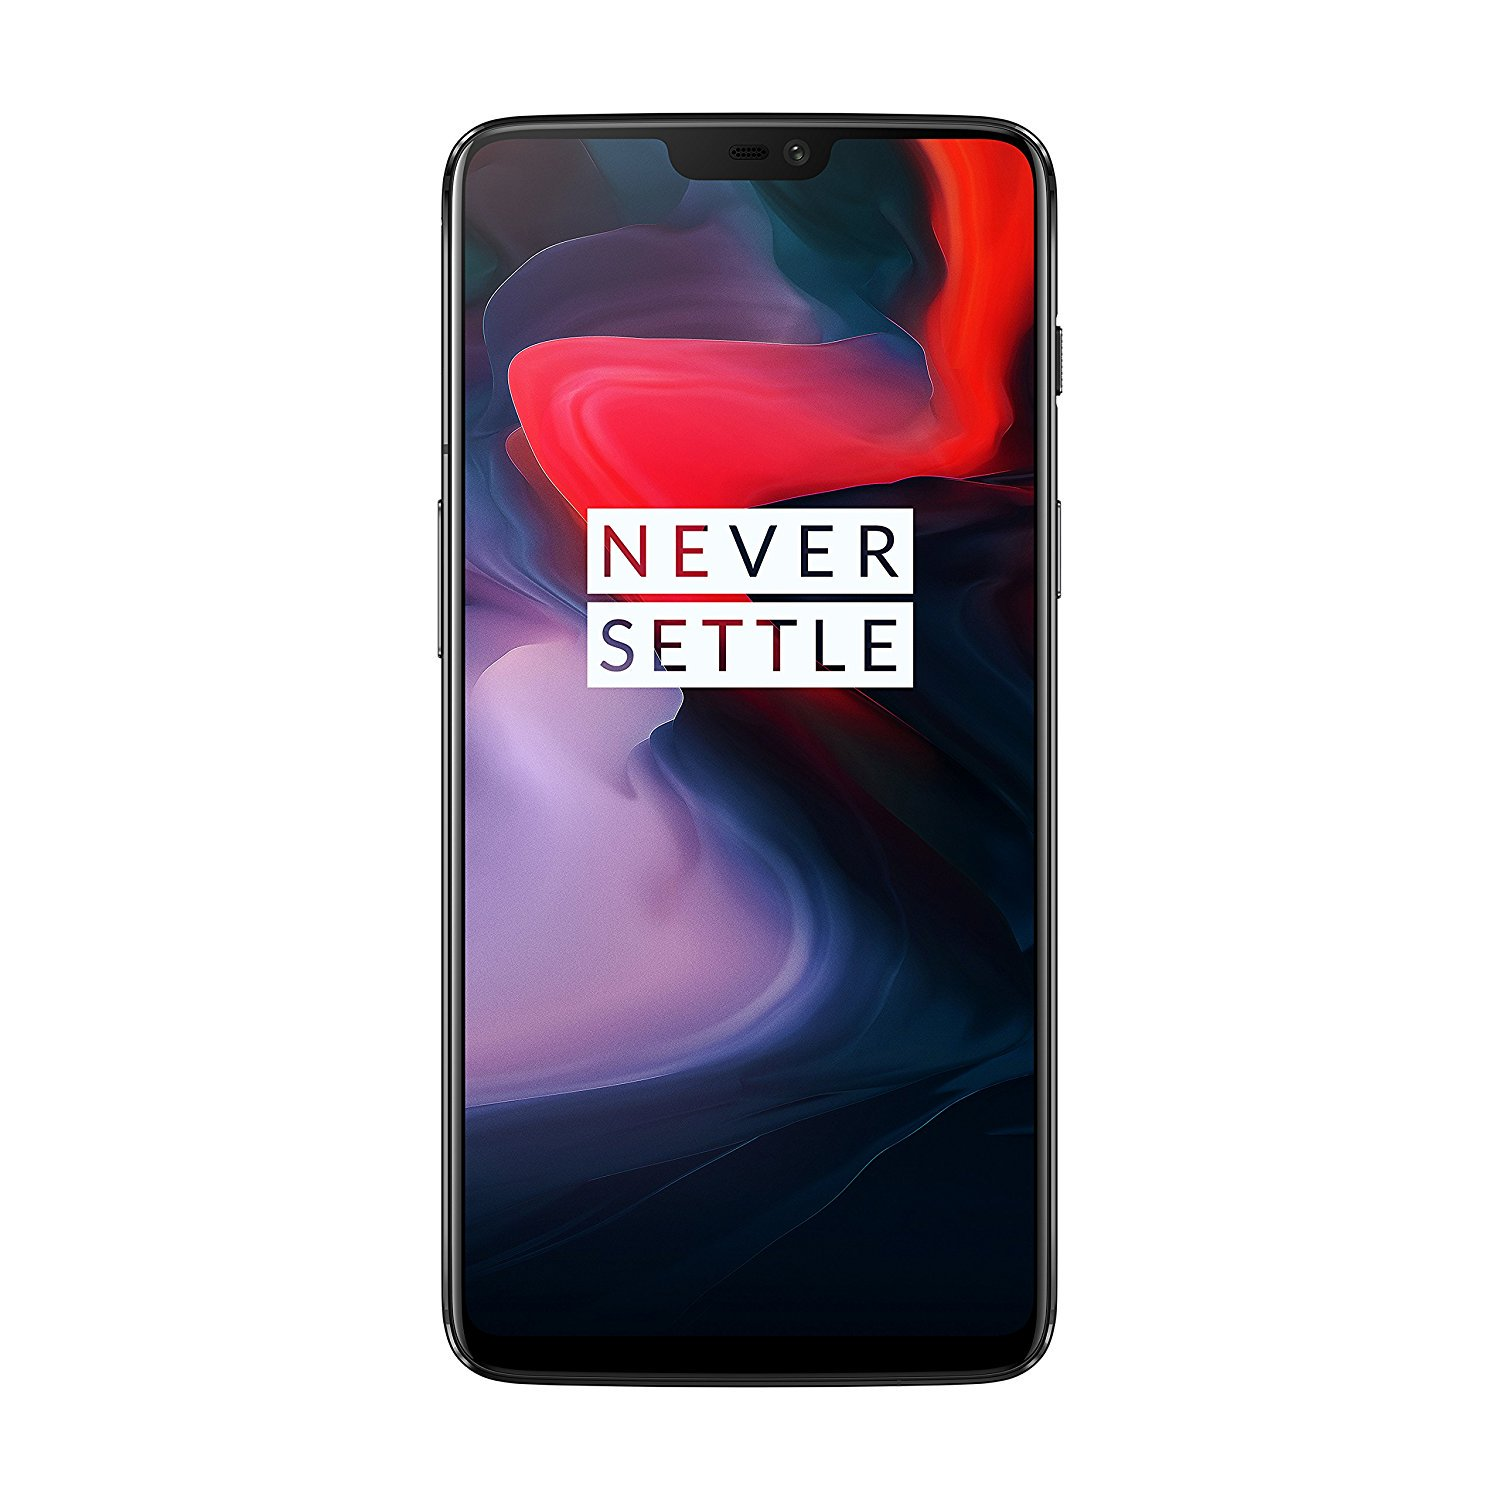 Amazon Listing reveals everything about the OnePlus 6 2